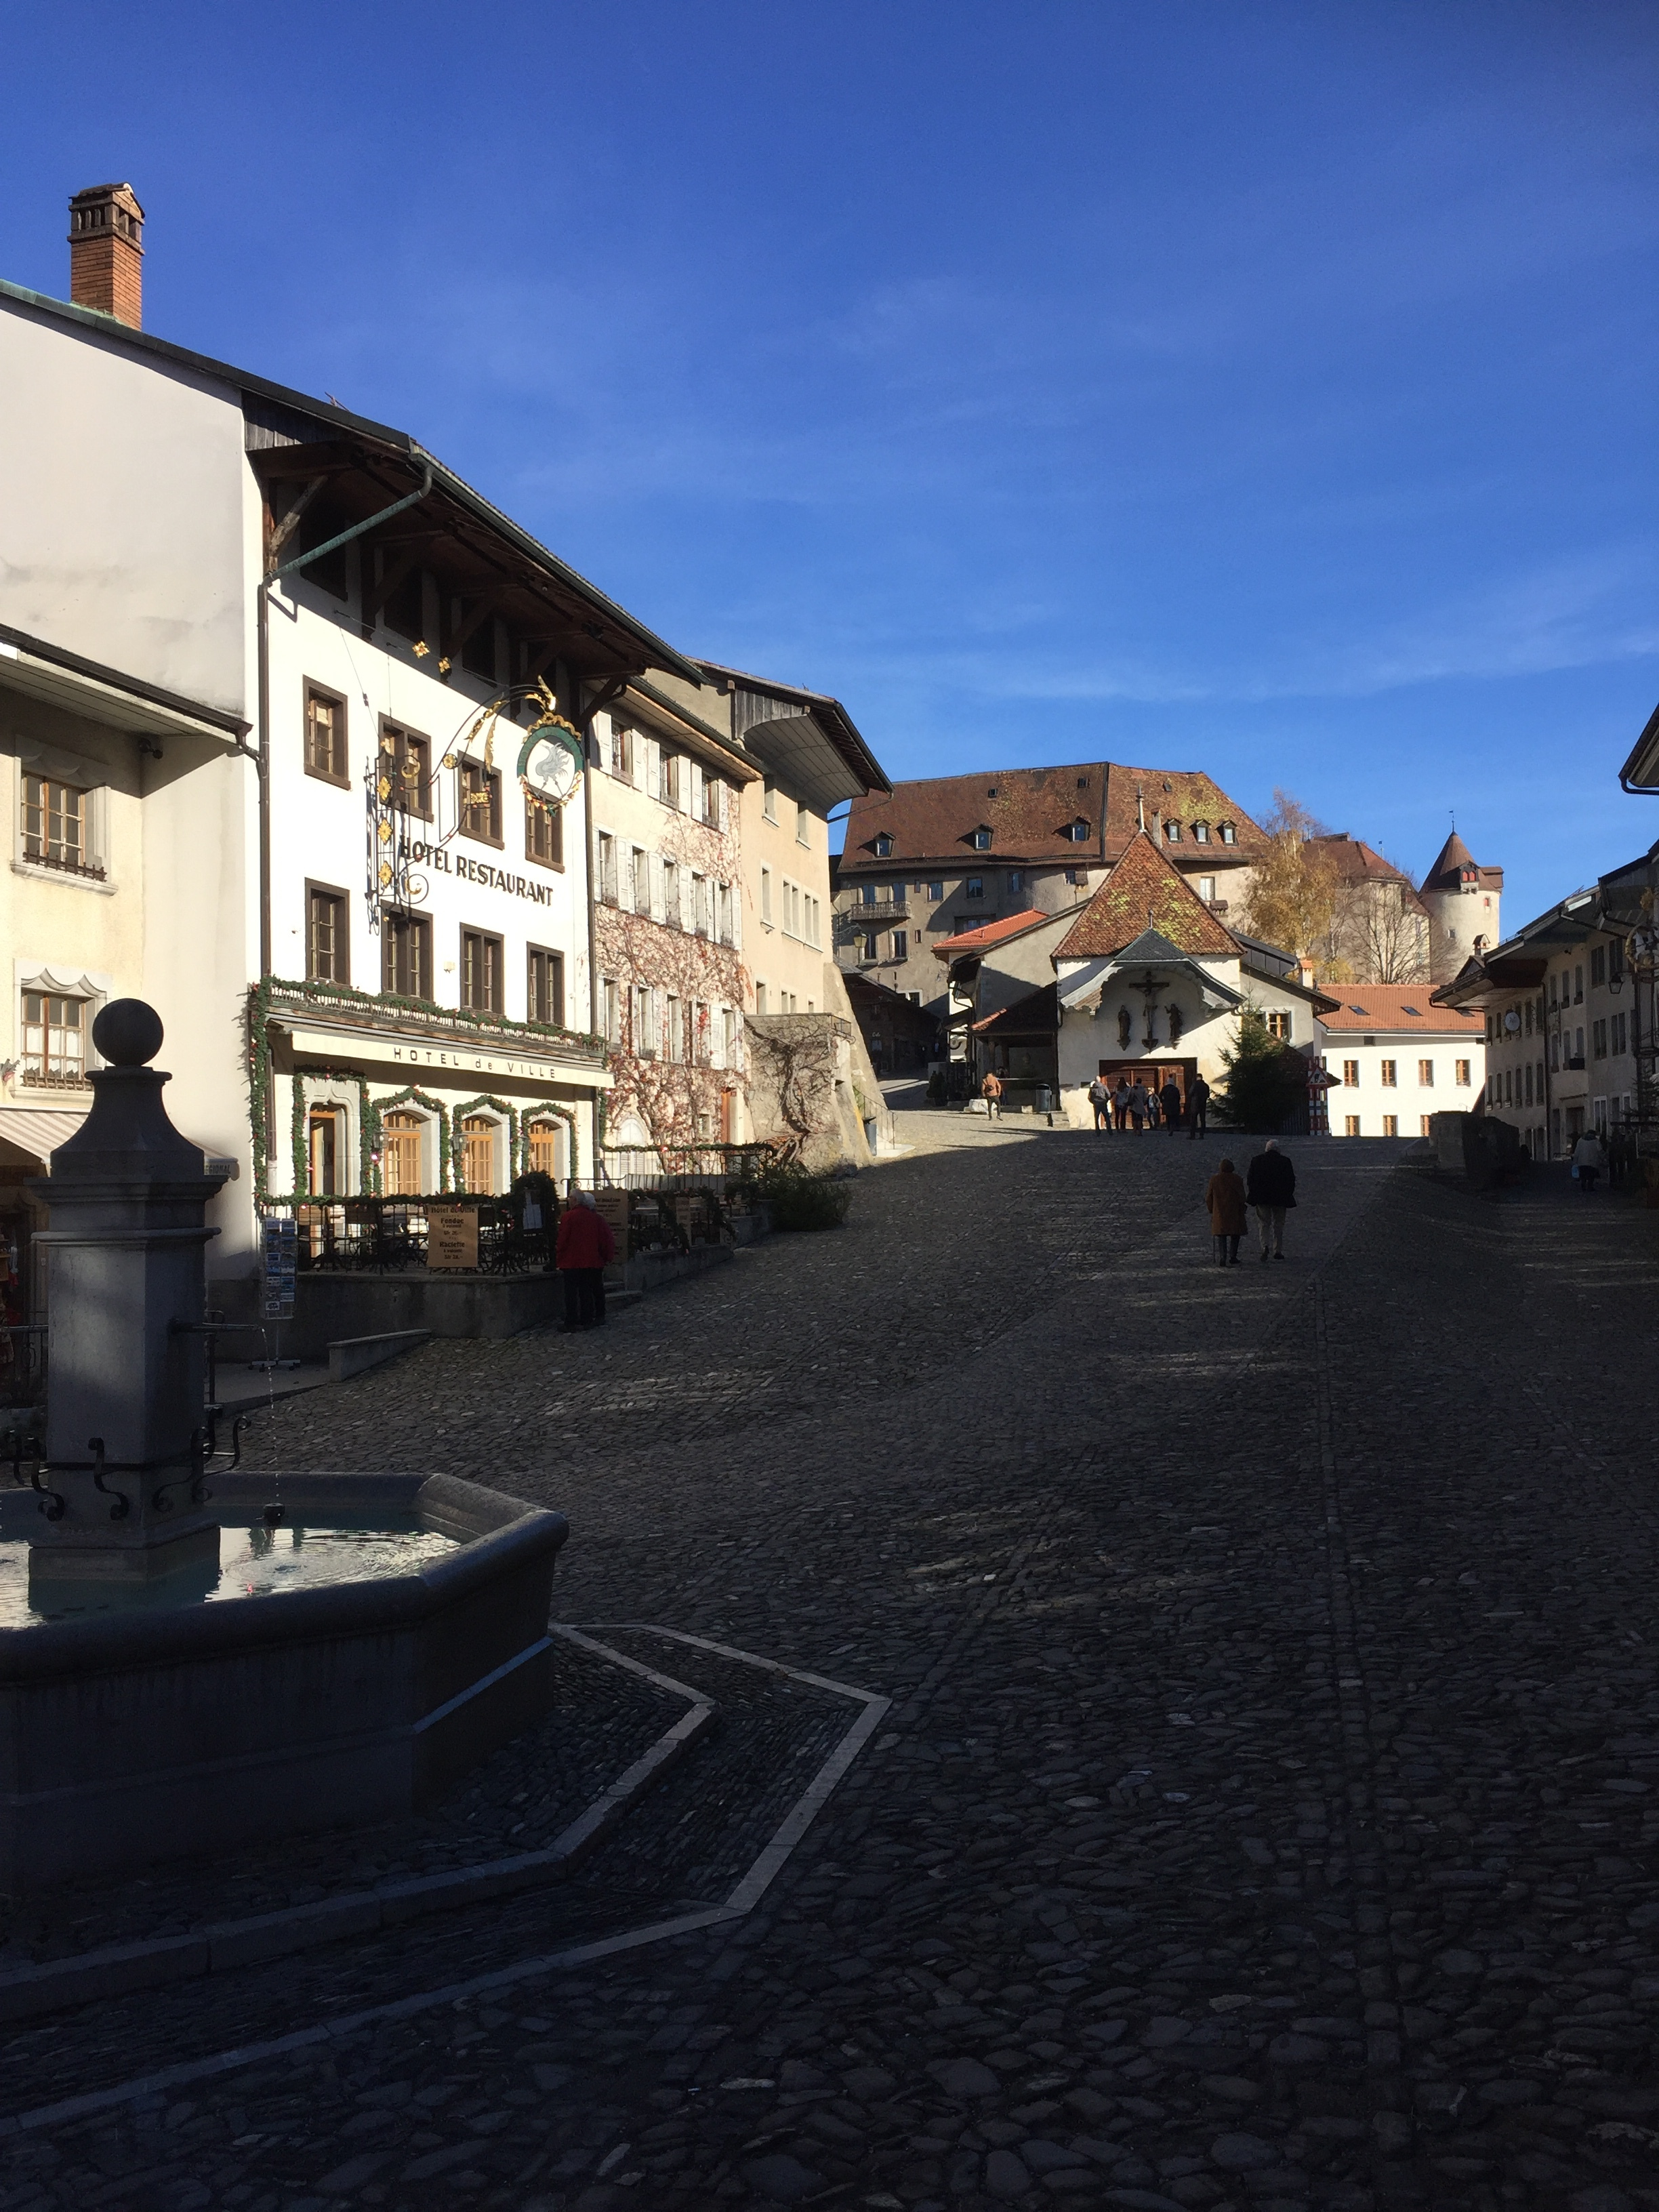 Gruyere's main - and only - street